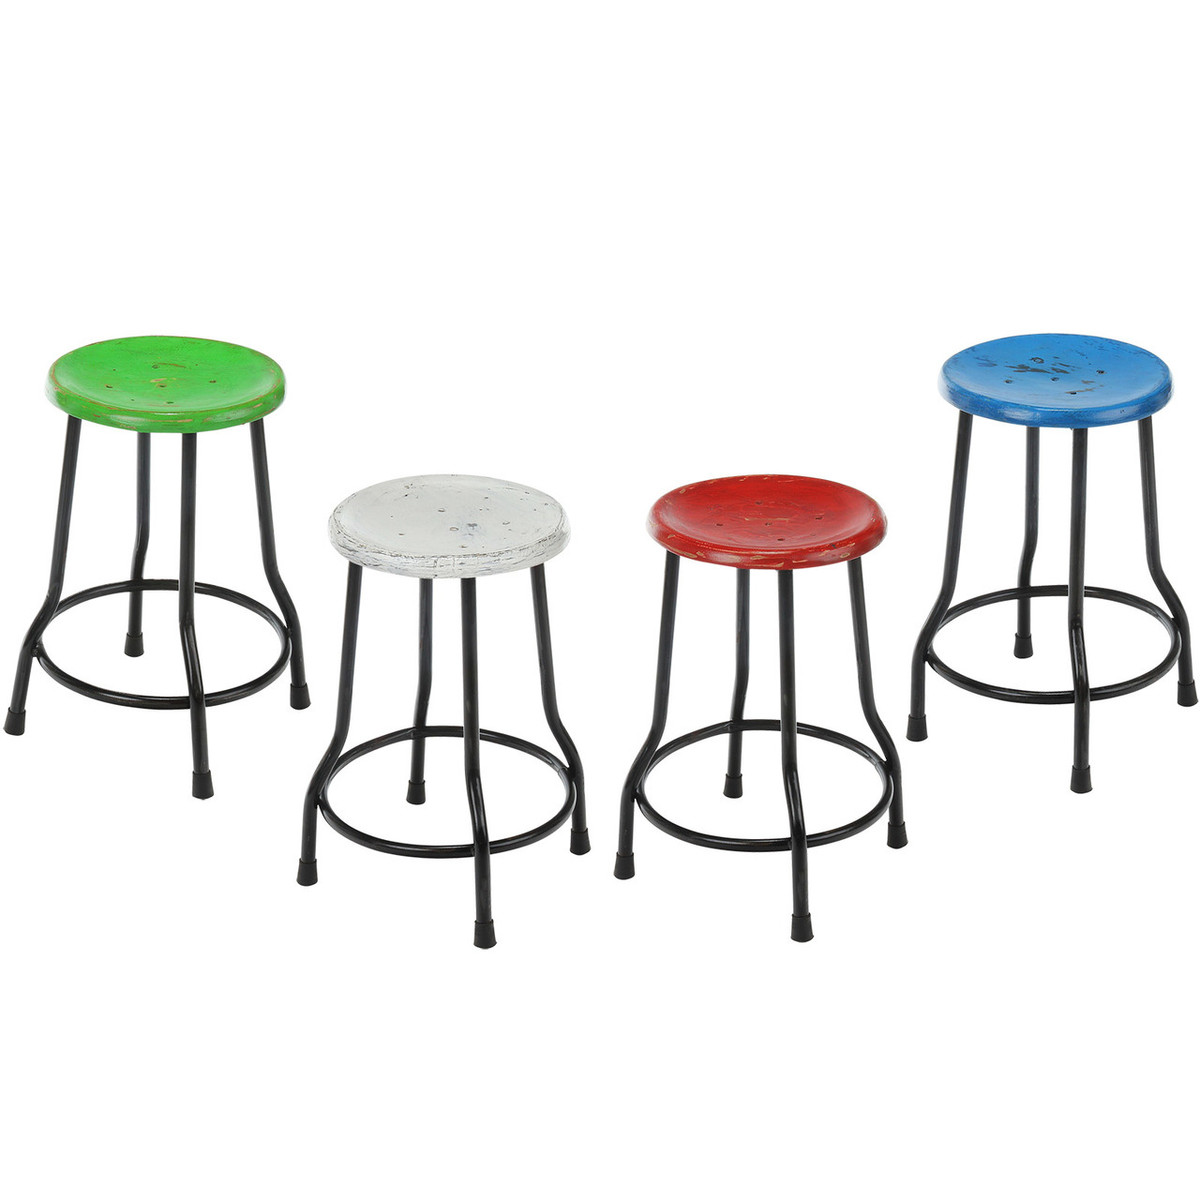 18 Best Images About Counter Stools On Pinterest: Farmhouse 18 Inch Stool, White (JA-18-CKT-WH)